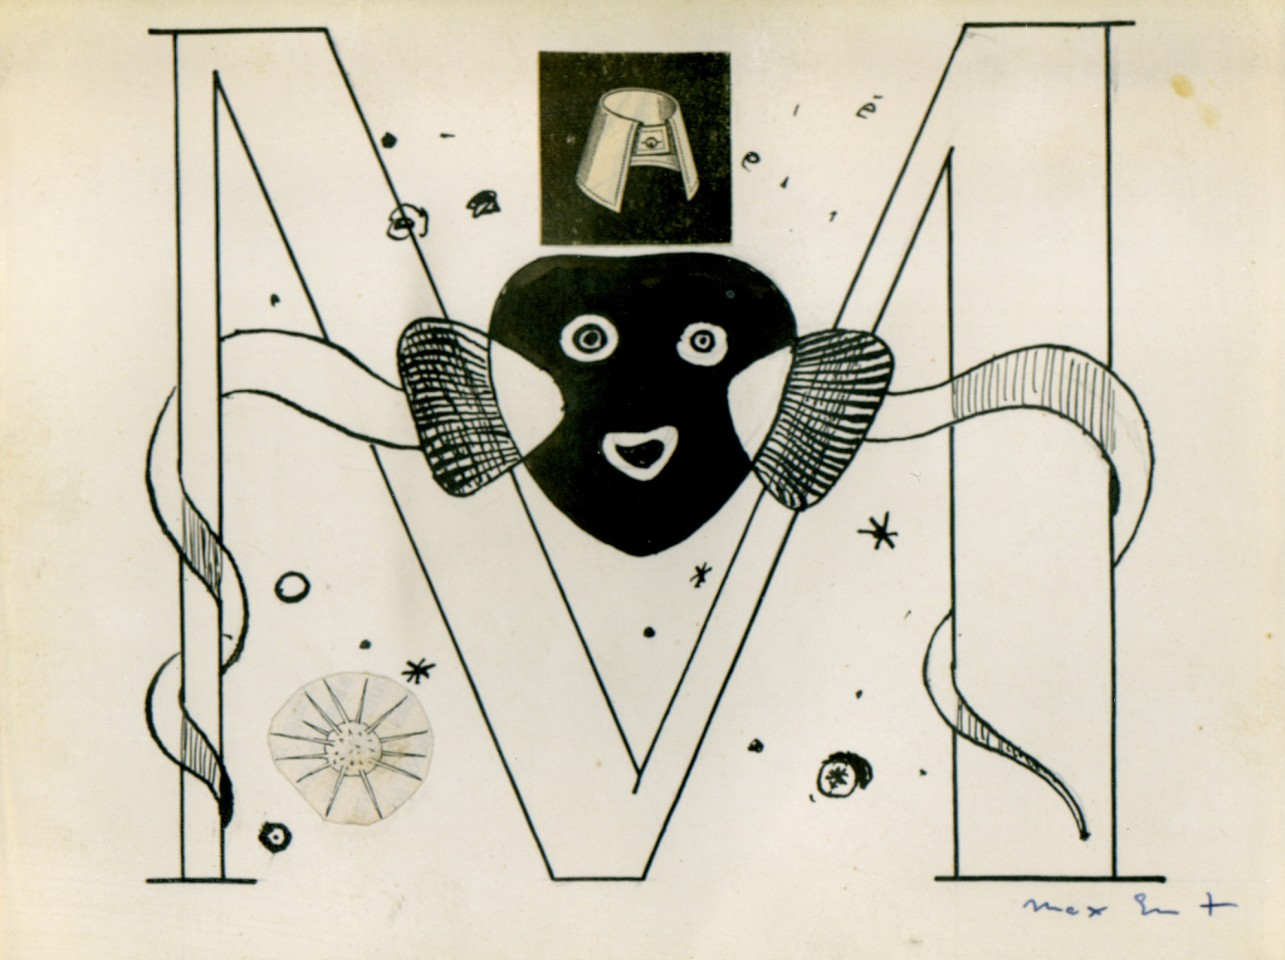 'Initial M' Illustration for Benjamin Péret, La Brebis Galante, Paris, 1949